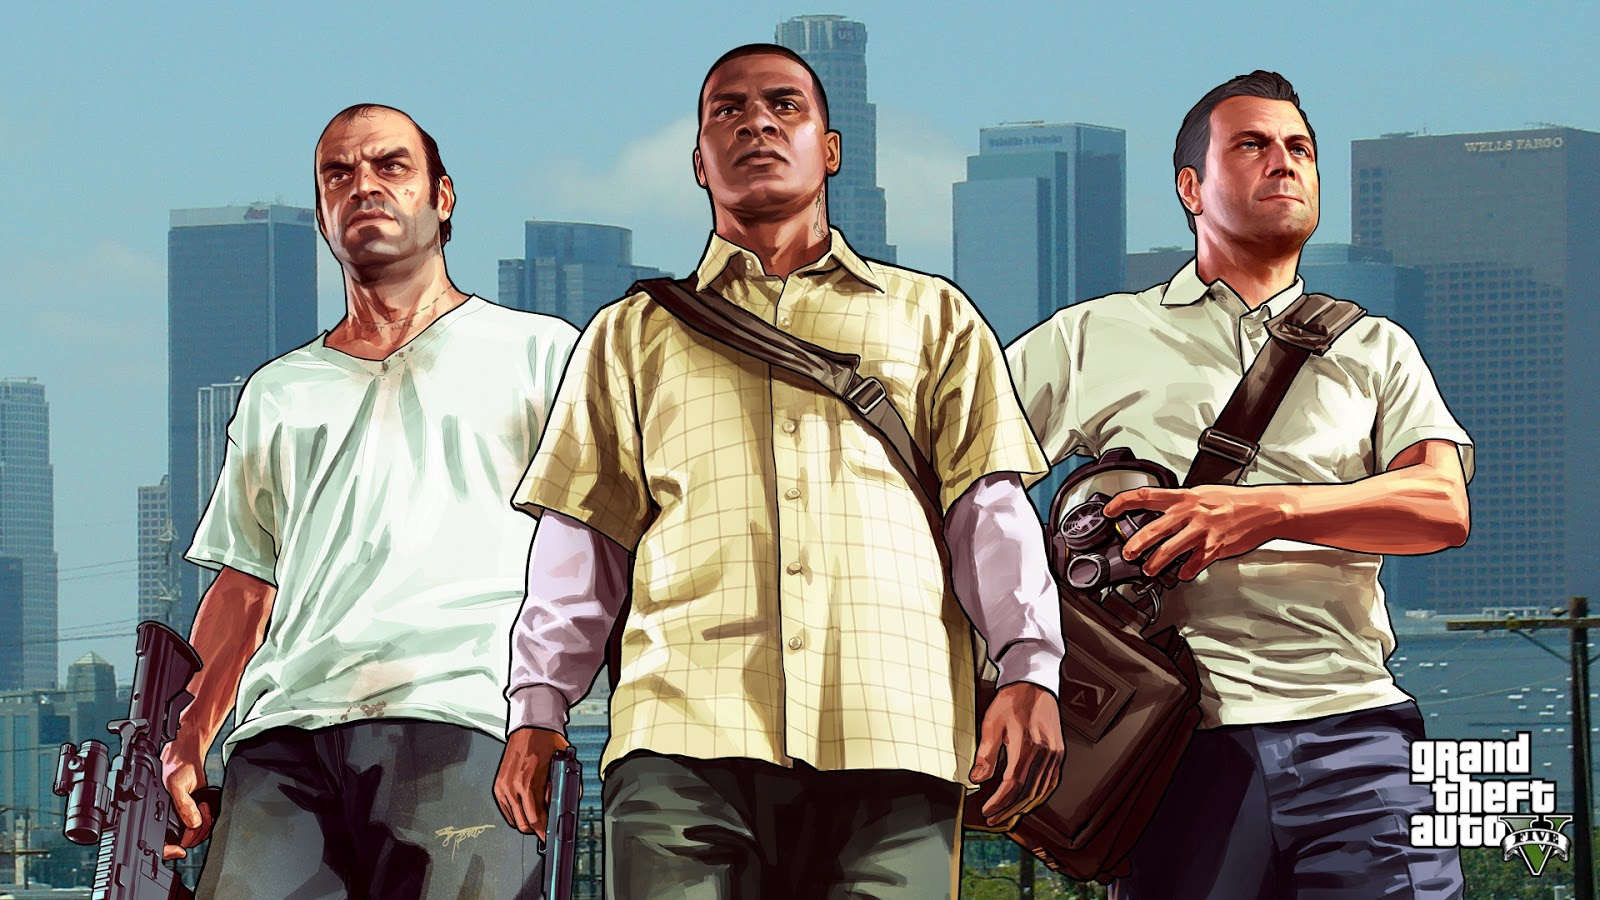 GTA 5 2013 Wallpaper HD 1600x900